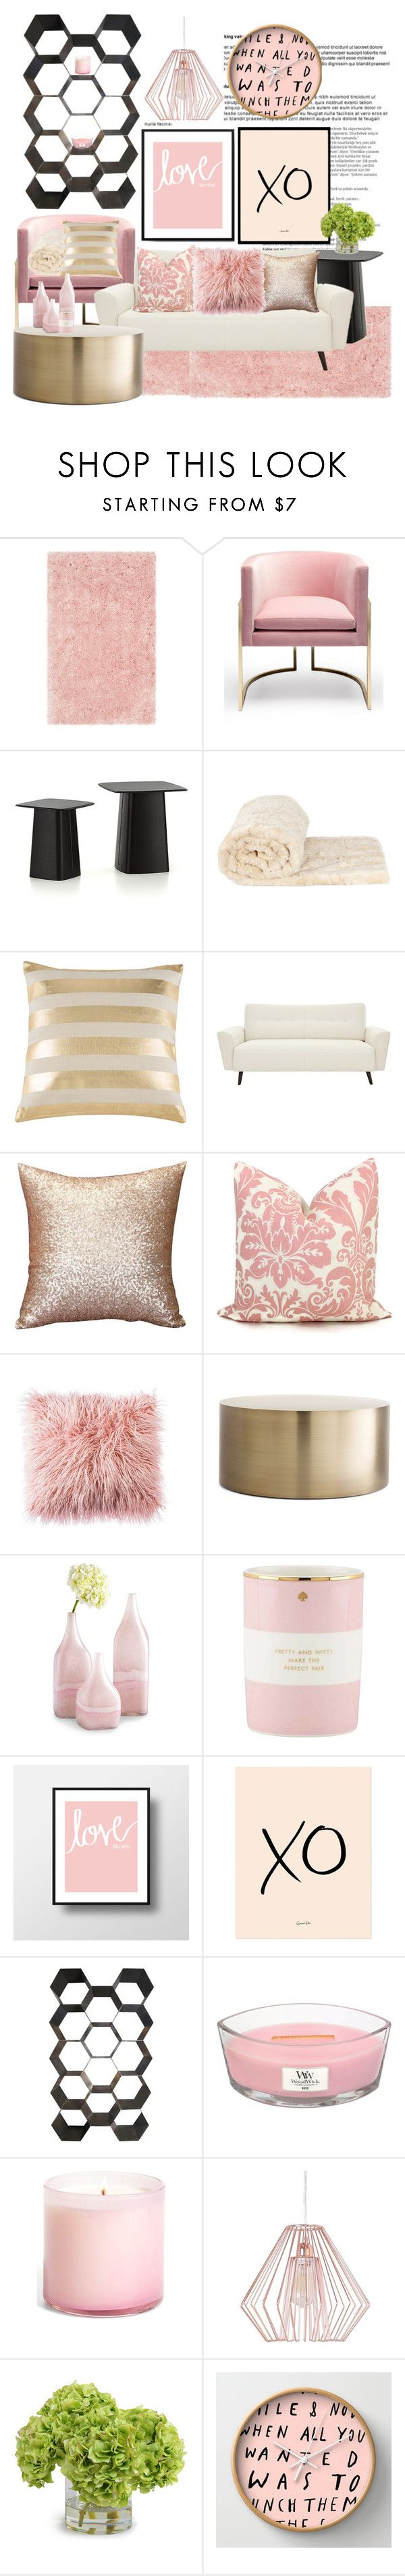 """XOXO"" by missoumiss on Polyvore featuring interior, interiors, interior design, home, home decor, interior decorating, Balmain, Vitra, Montague & Capulet and Shiraleah"